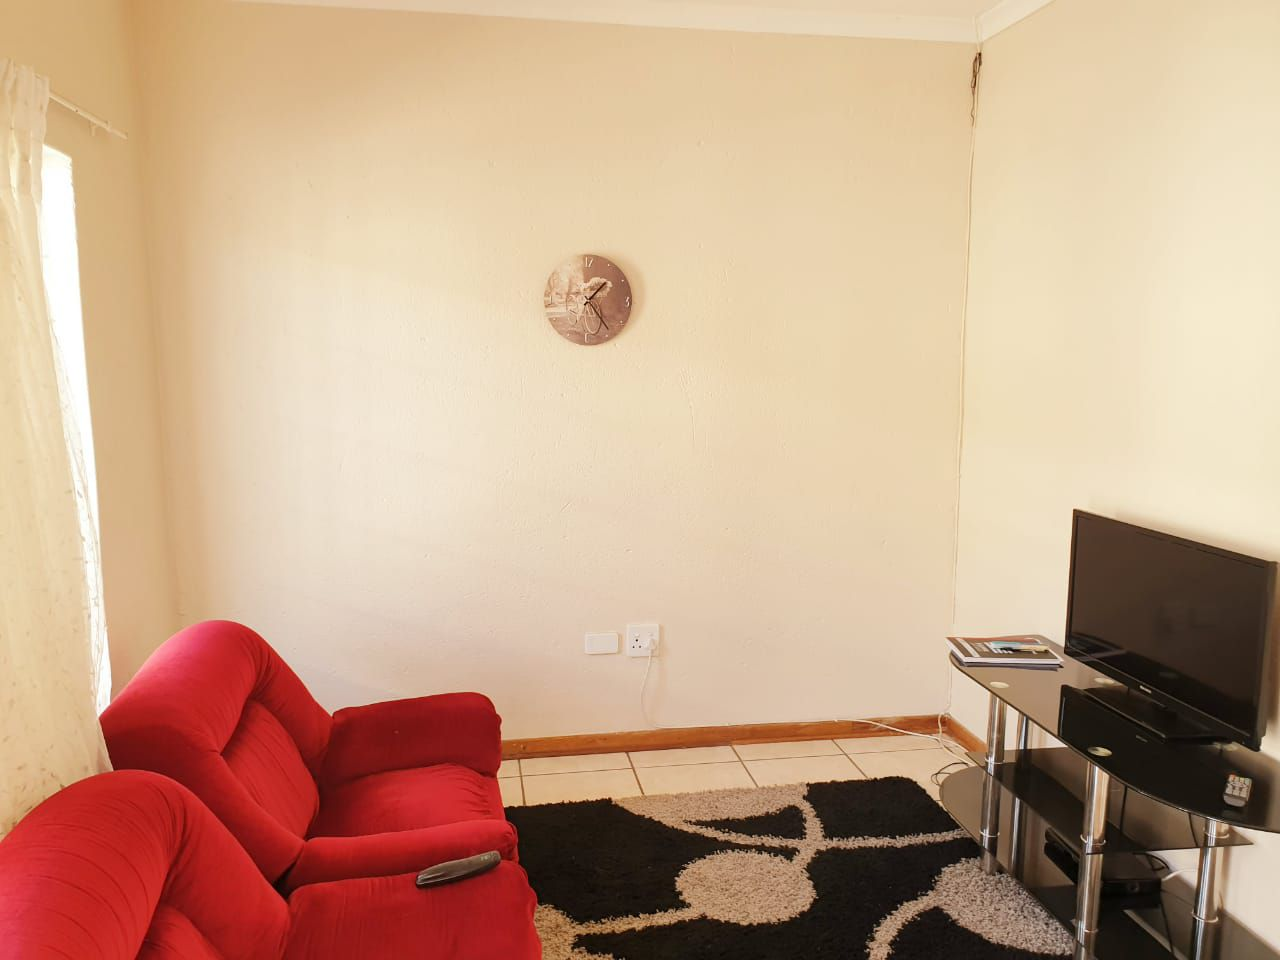 Apartment in Central - WhatsApp Image 2019-06-12 at 14.18.04 (1).jpeg